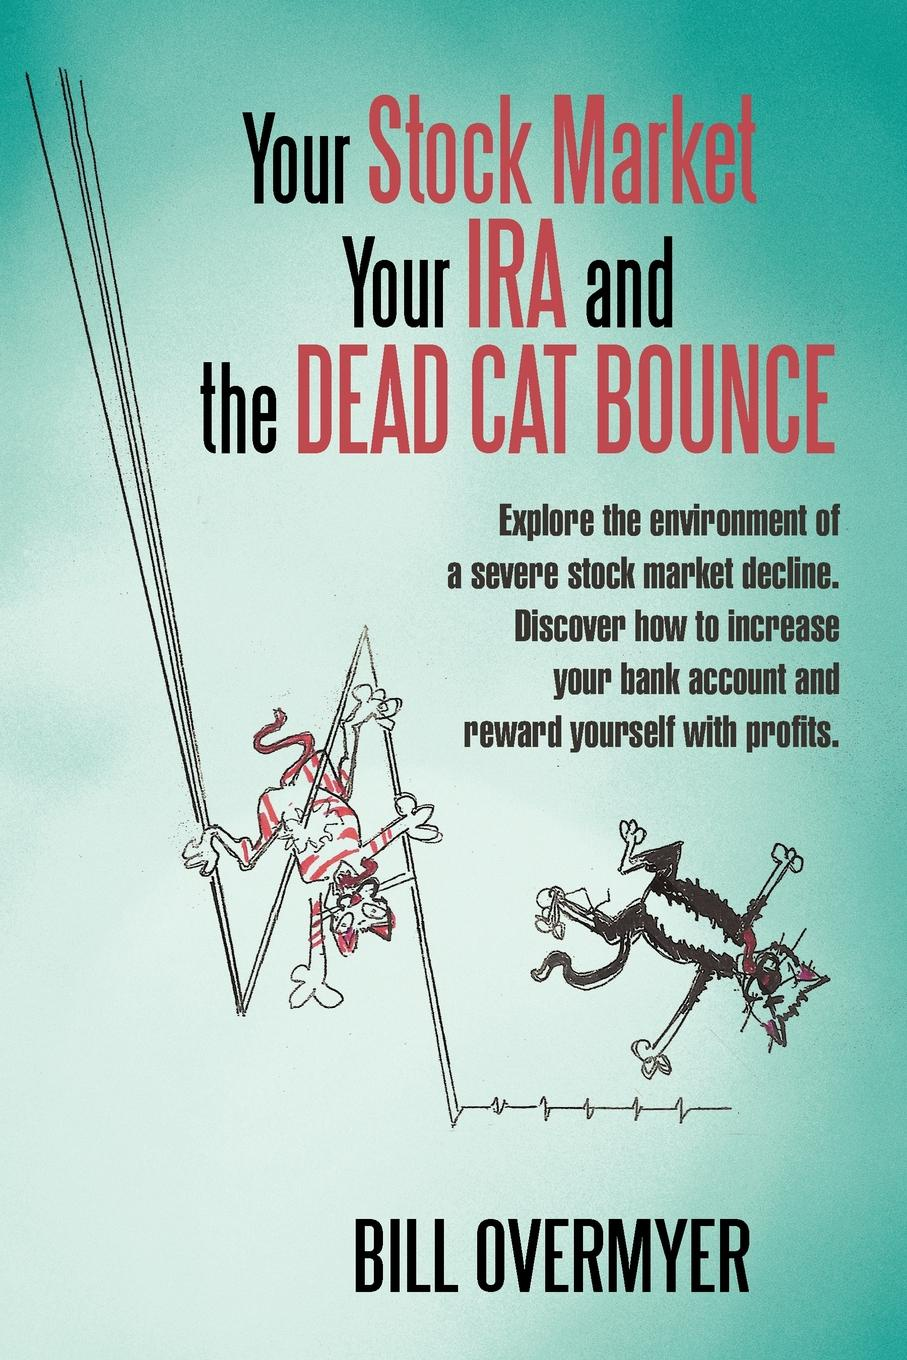 BILL OVERMYER Your Stock Market Your IRA and THE DEAD CAT BOUNCE. Explore the environment of a severe stock market decline. Discover how to increase your bank account and reward yourself with profits. original 1pcs byv20 40 goods in stock